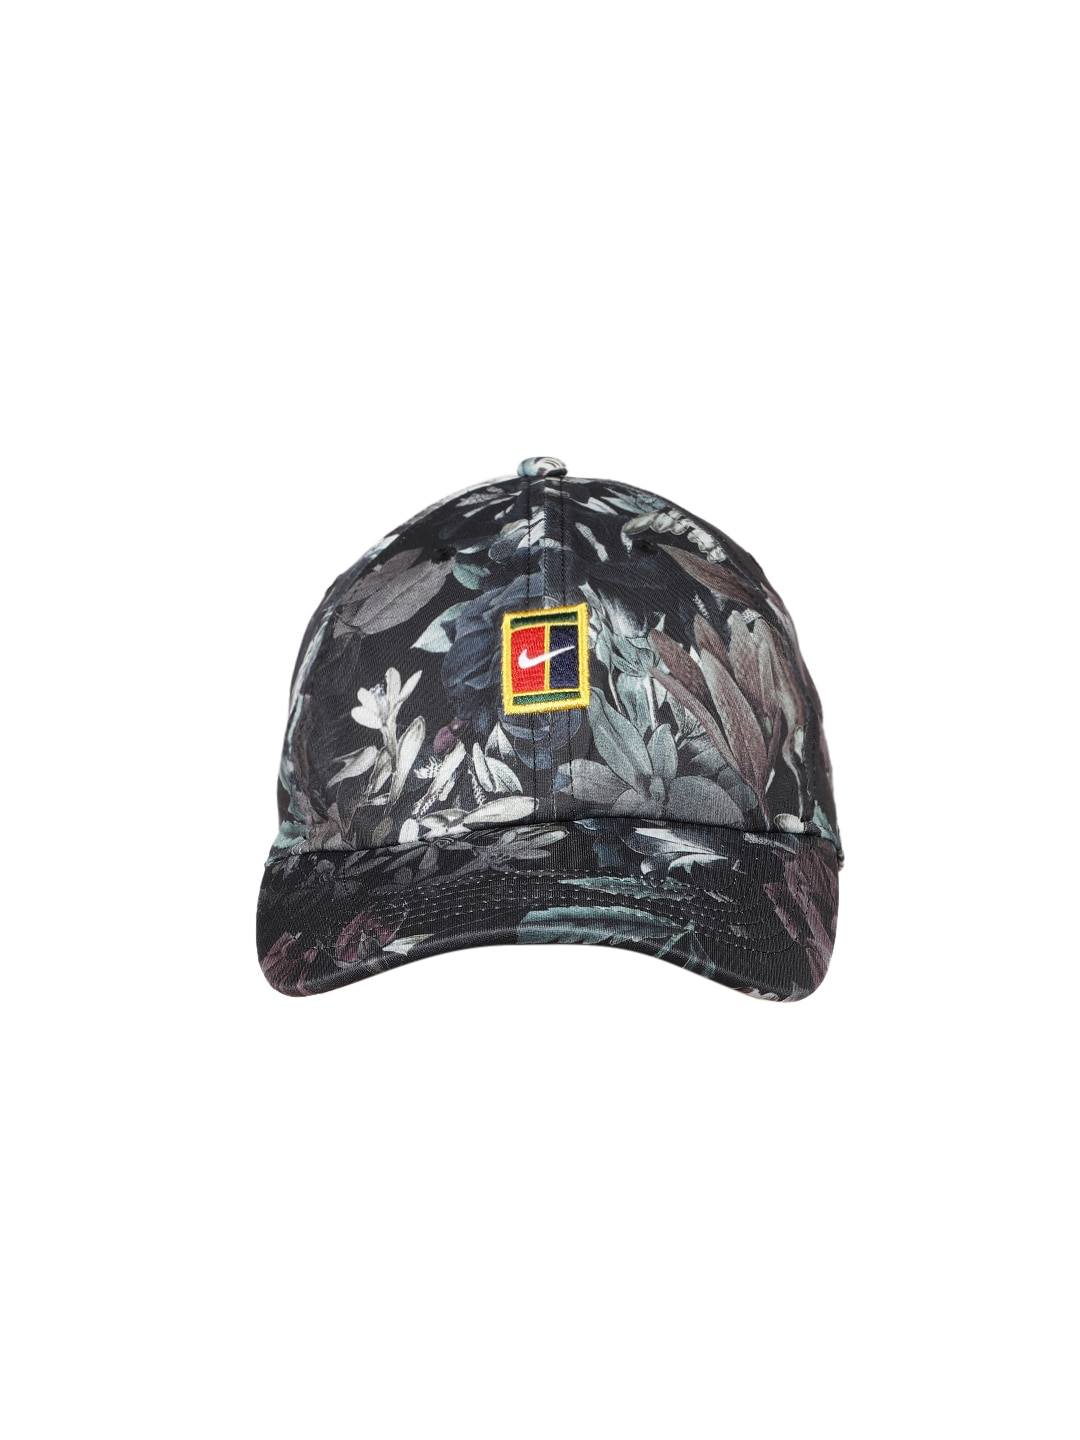 newest c55f7 9042c Caps - Buy Caps for Men, Women   Kids Online   Myntra